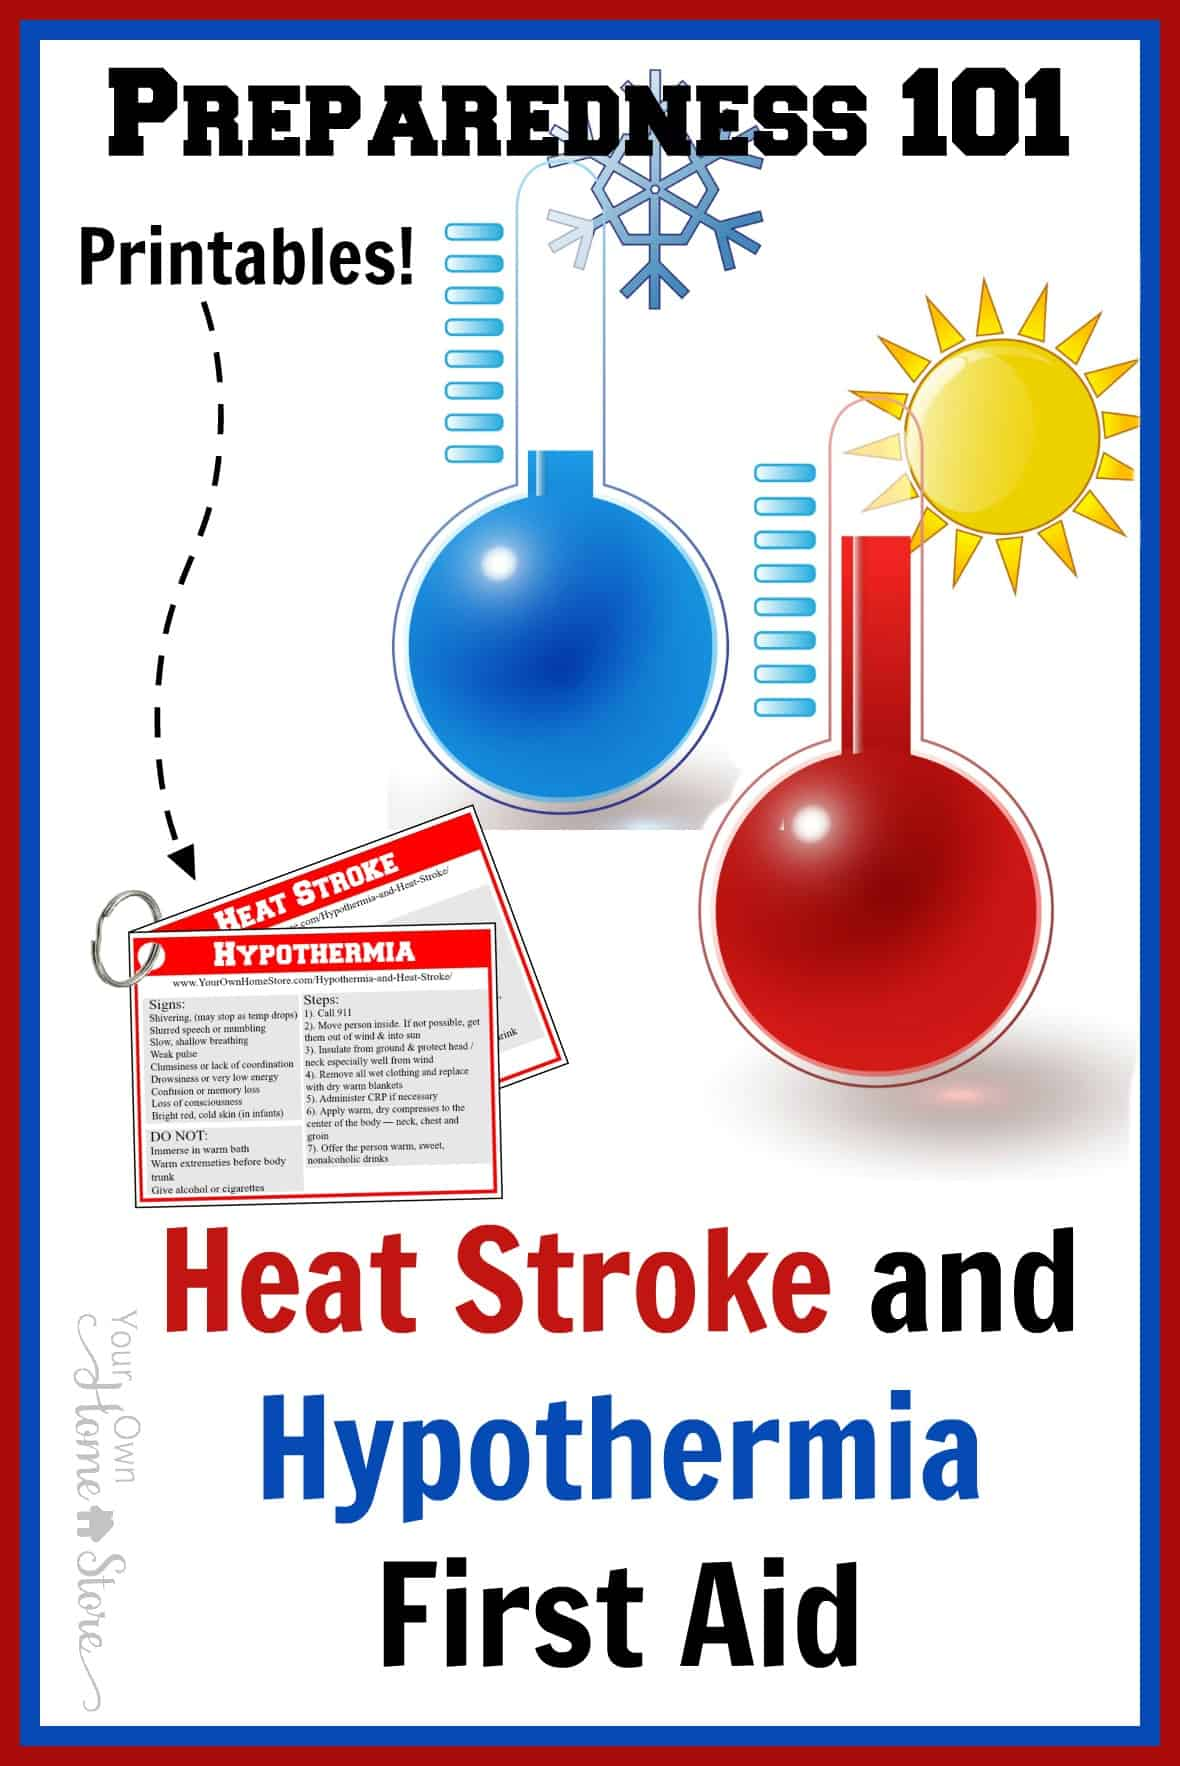 First aid for heat shock